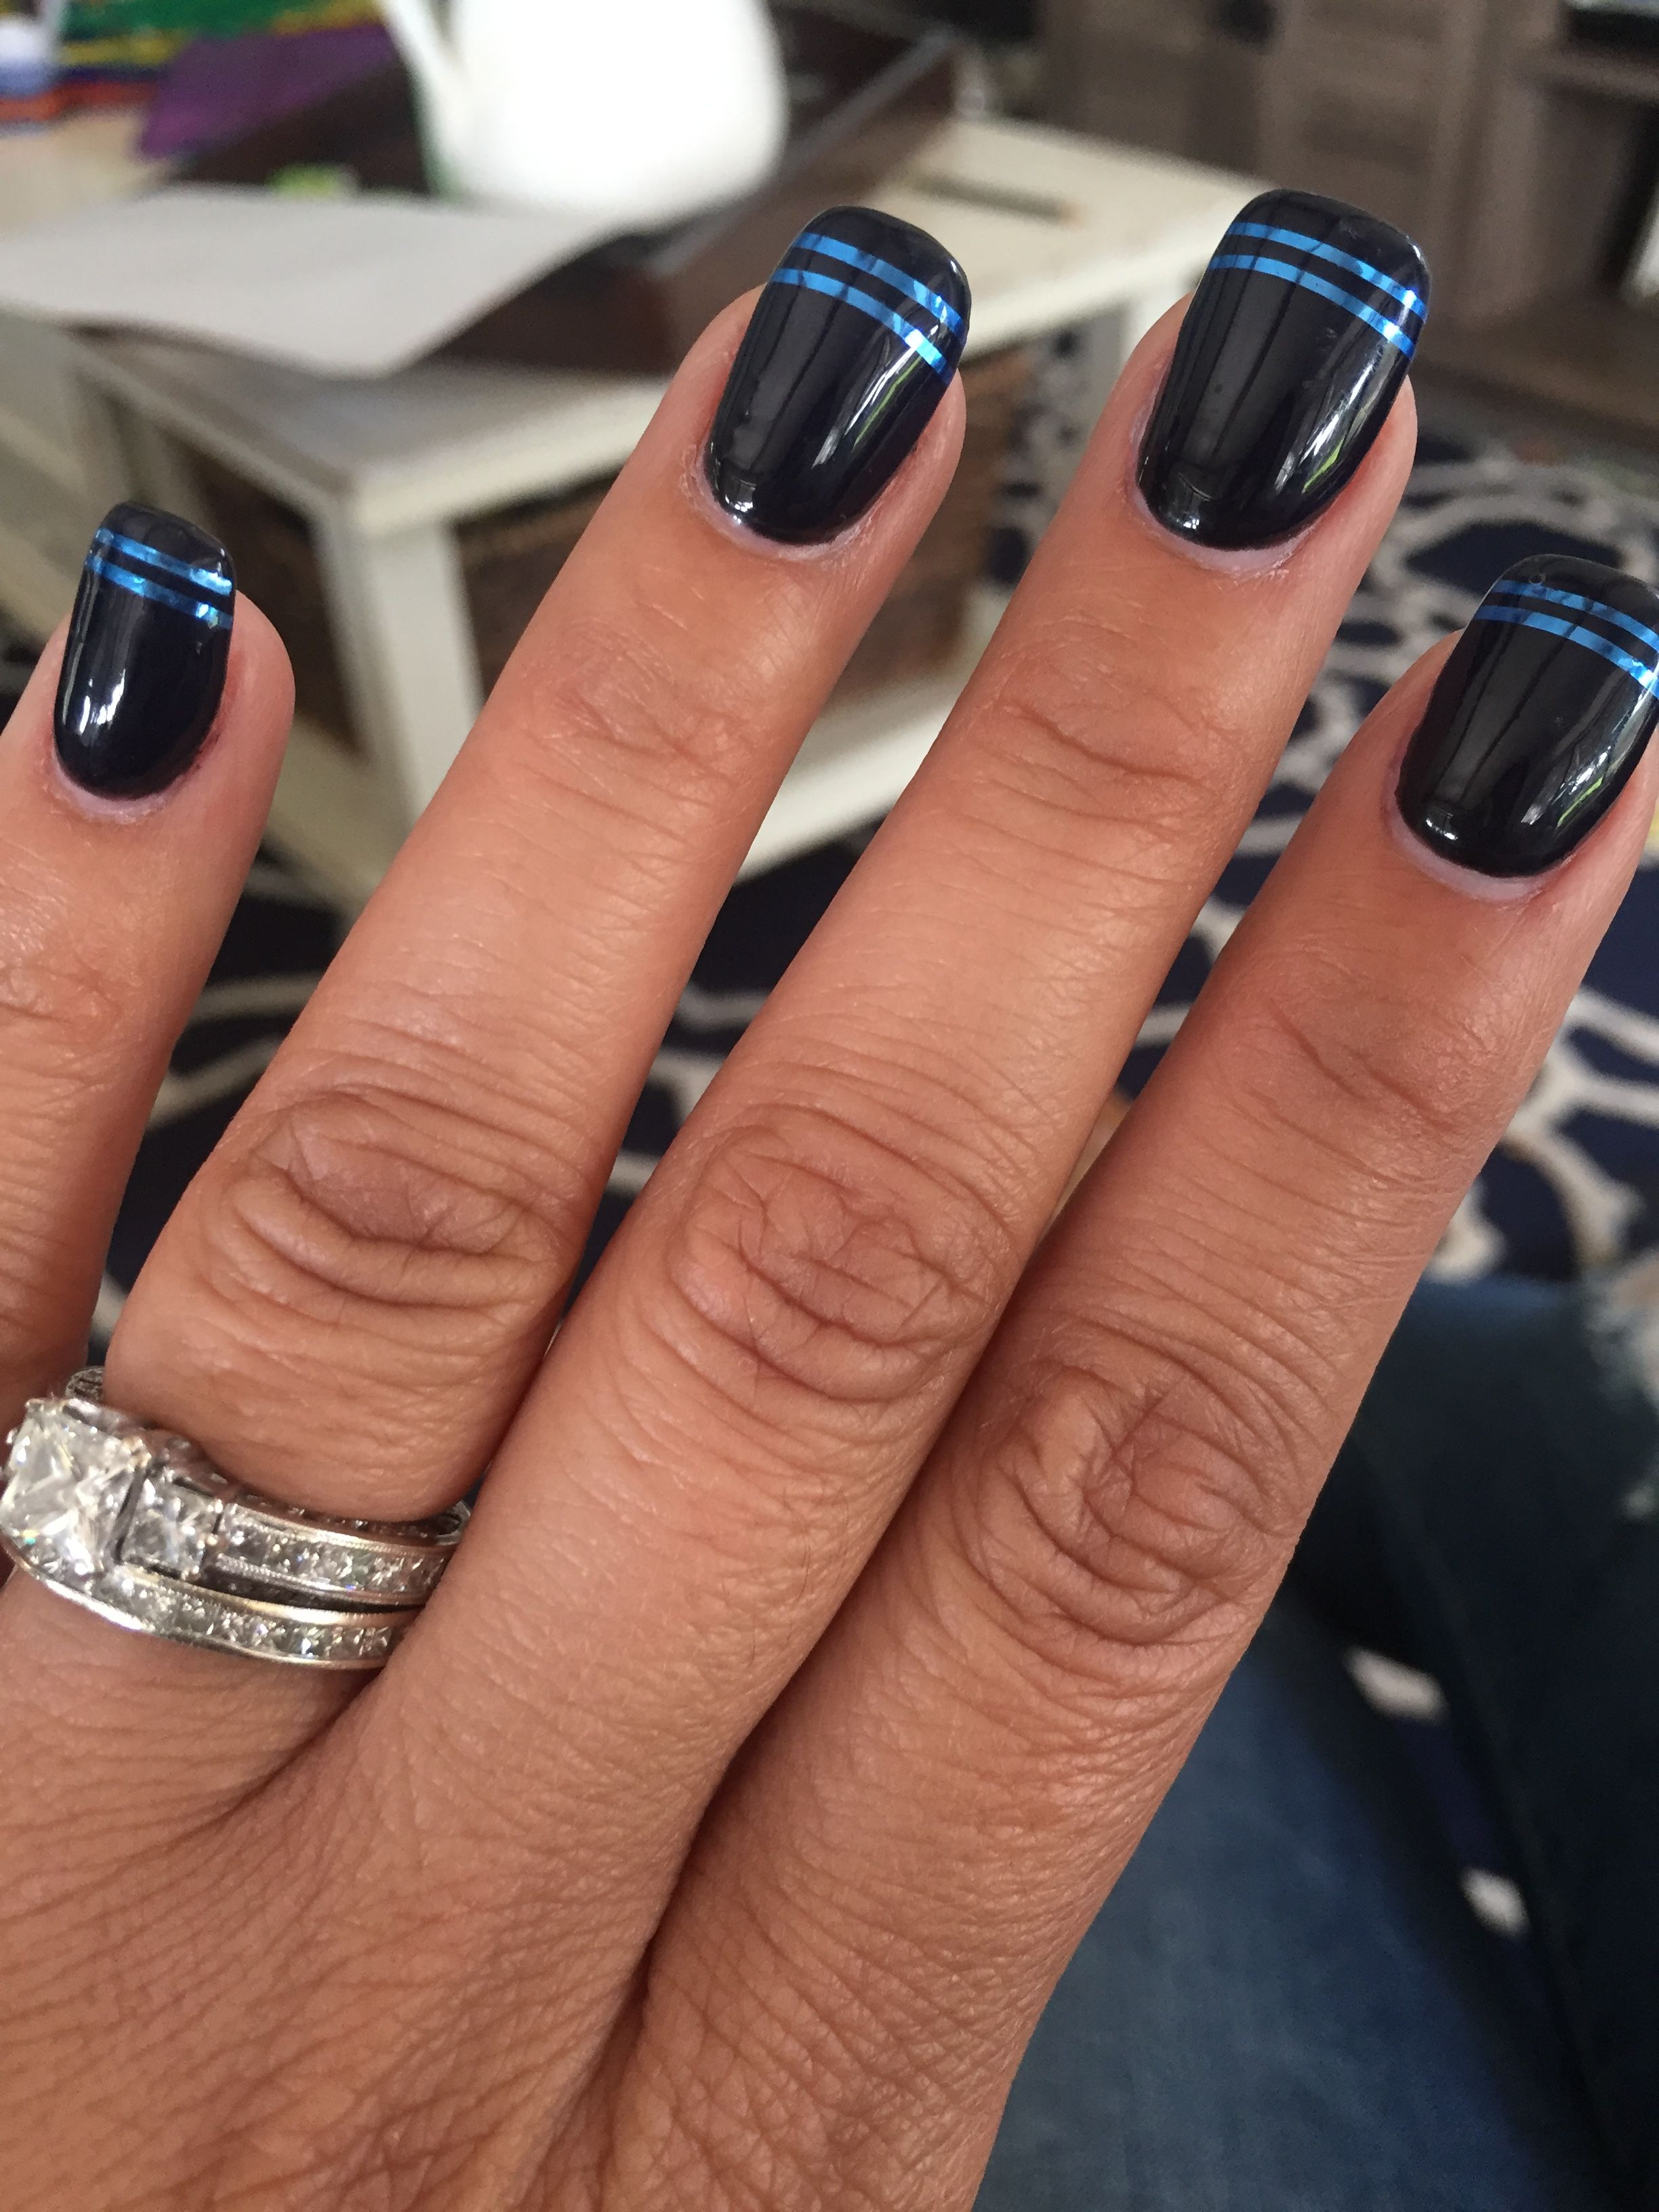 Thin Blue Line Nail Art - Shop Low Prices & Top Brands                                         Ad                                                                                                                 Viewing ads is privacy protected by DuckDuckGo. Ad clicks are managed by Microsoft's ad network (more info).